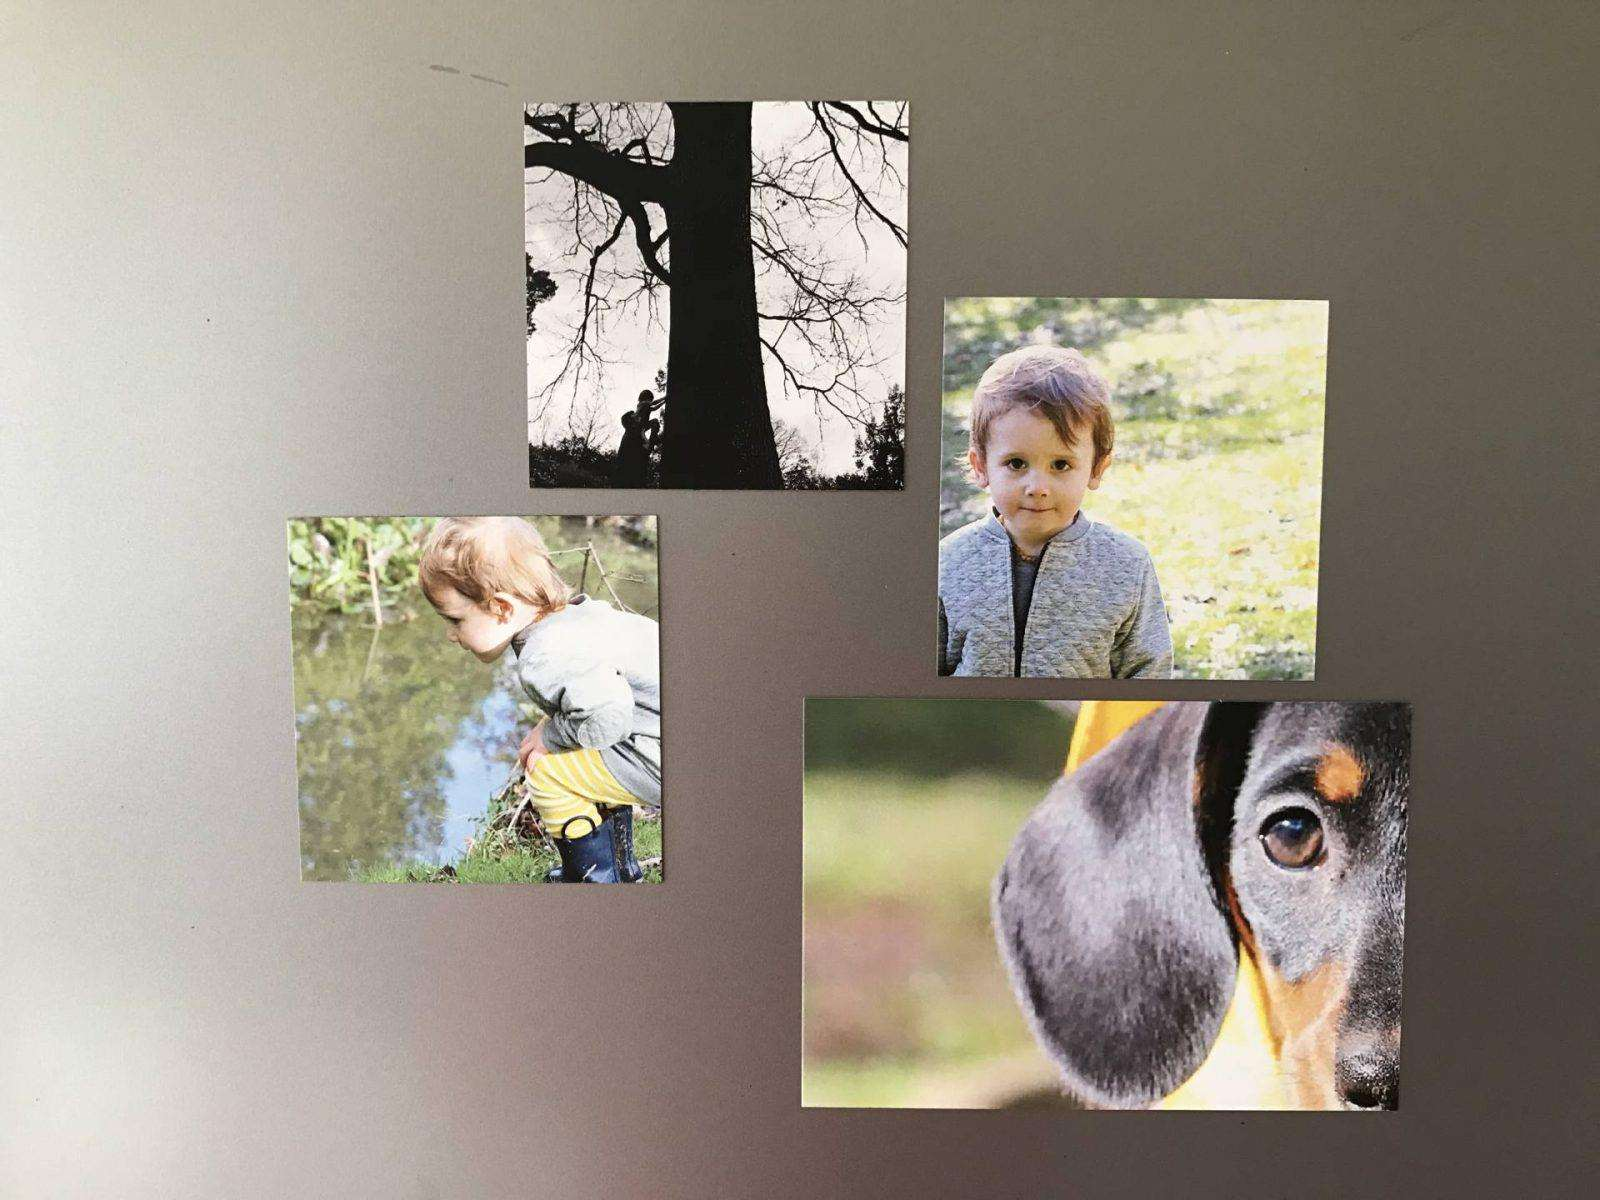 Six Mother's Day gift ideas that can't go wrong | Photobox Giveaway, IMG 3476 1600x1200%, new-dad, lifestyle%